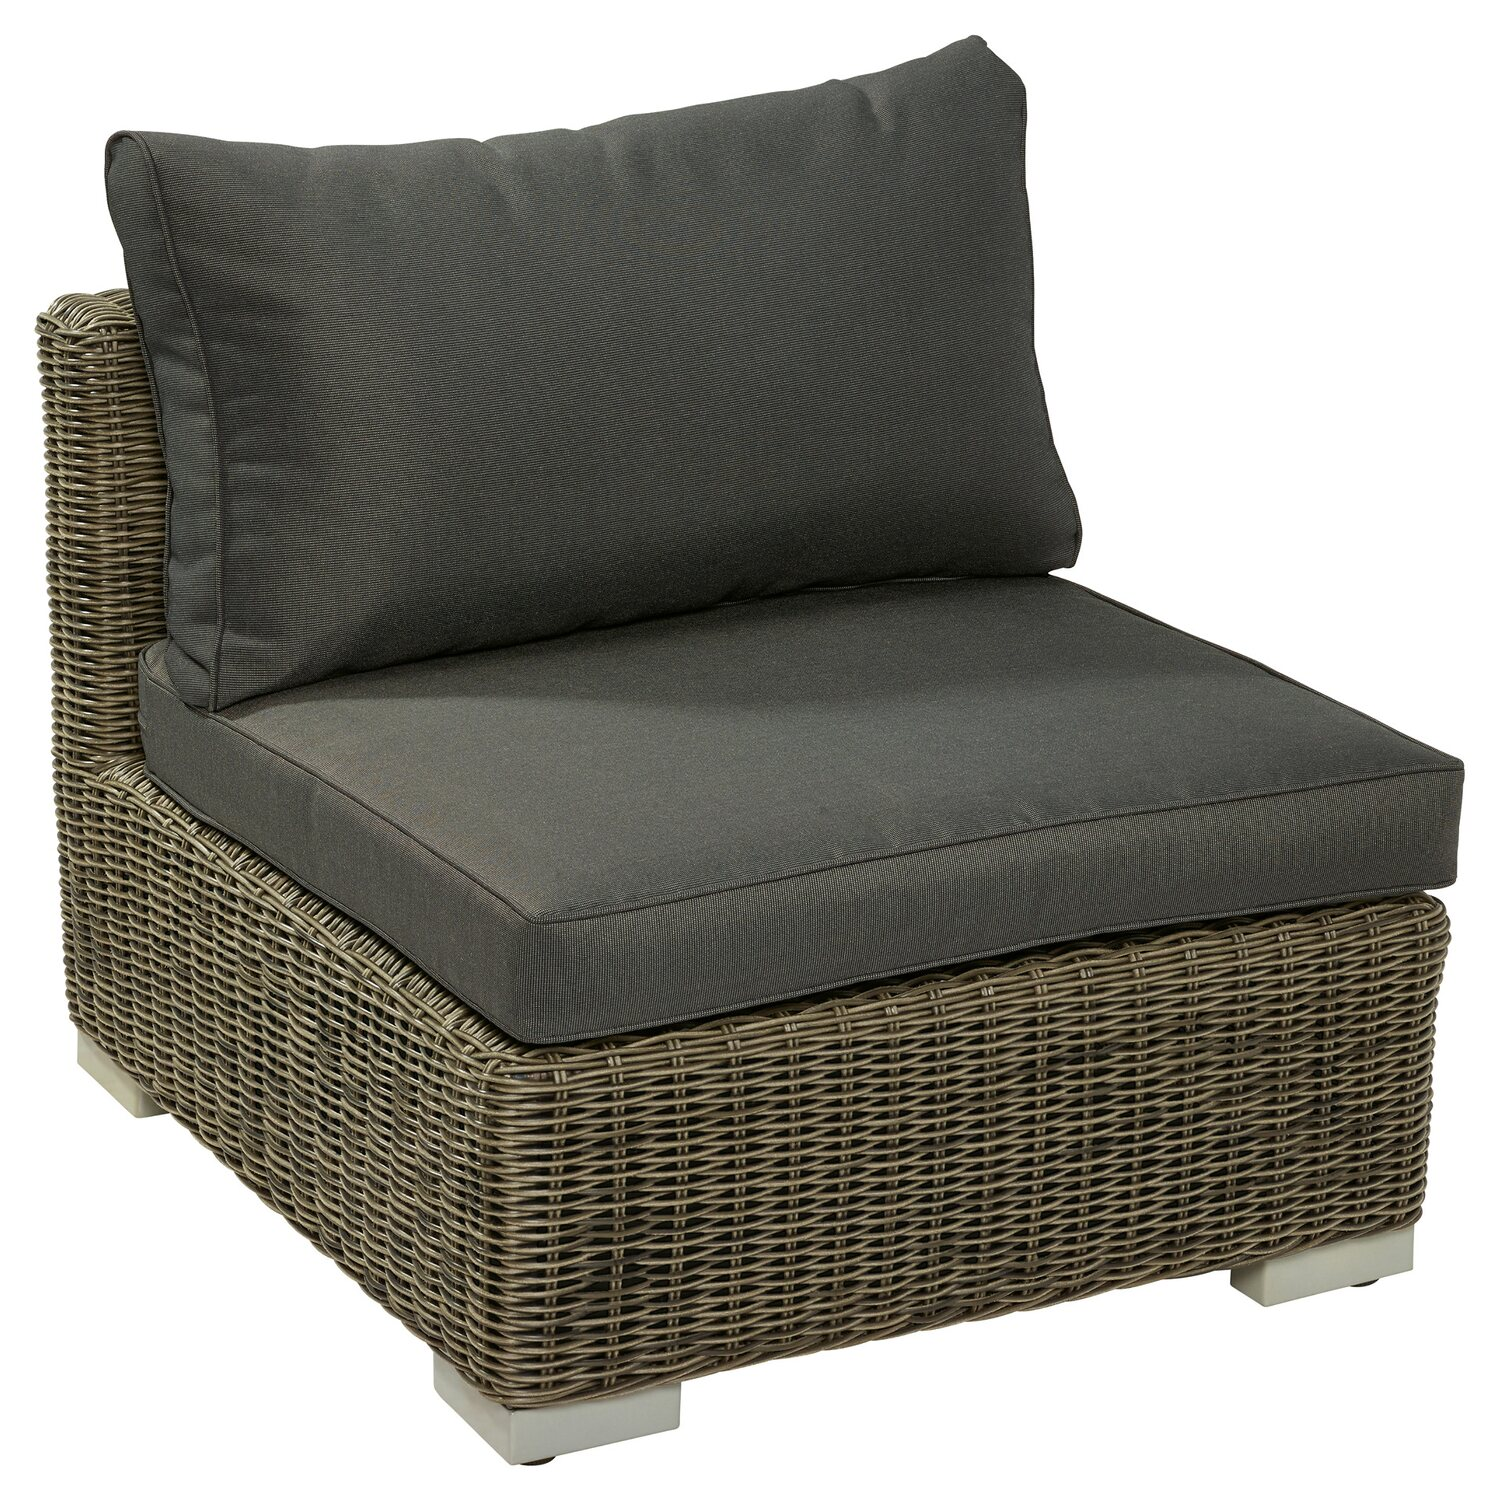 rattan sofa balkon. Black Bedroom Furniture Sets. Home Design Ideas